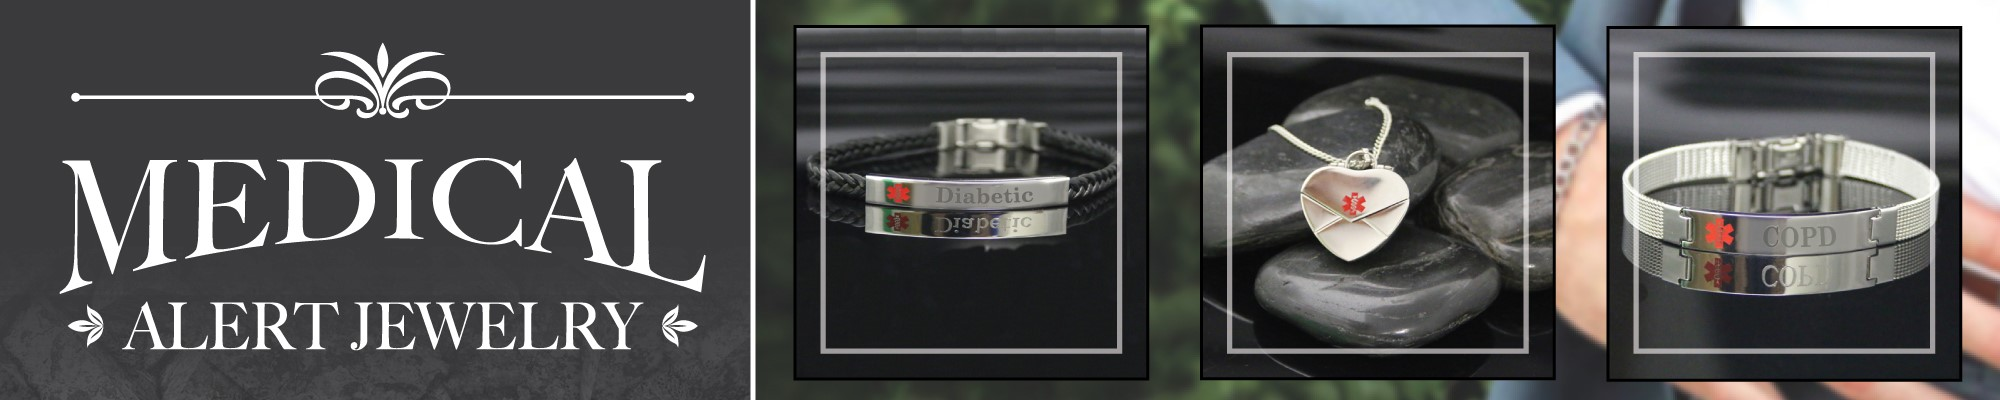 Personalized Medical Alert Jewelry